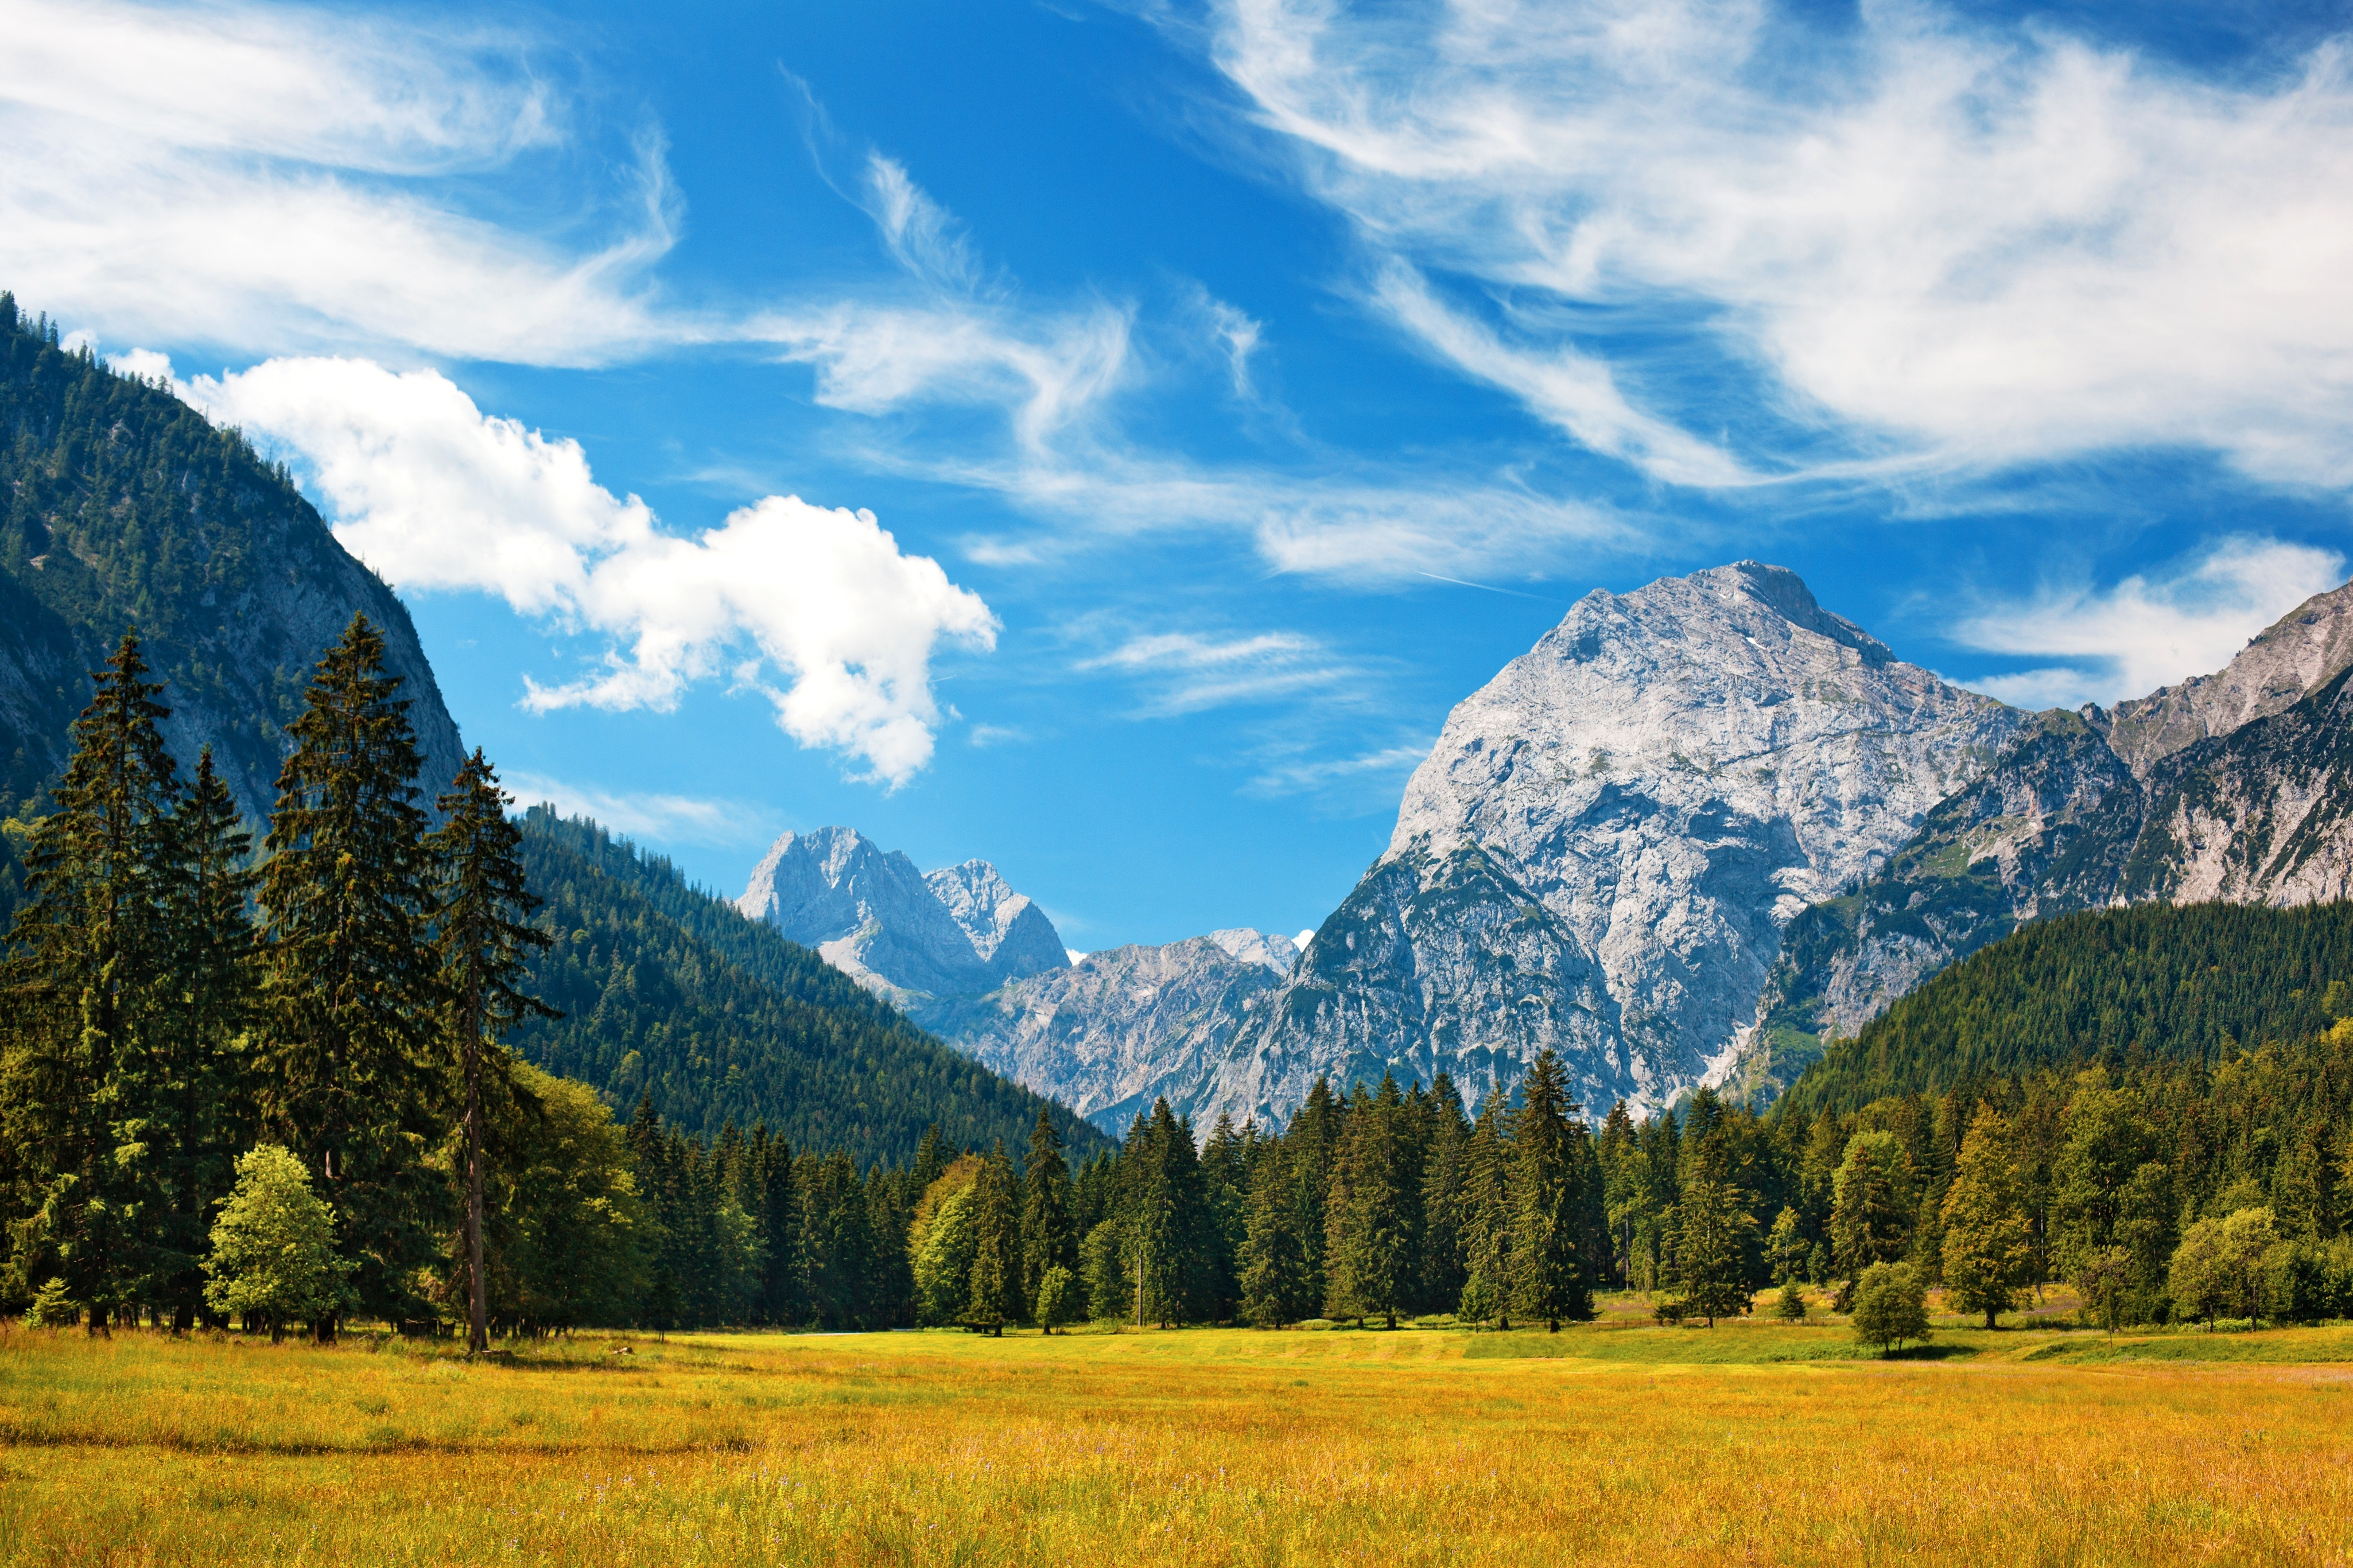 Mountain Forest Background Hd , HD Wallpaper & Backgrounds